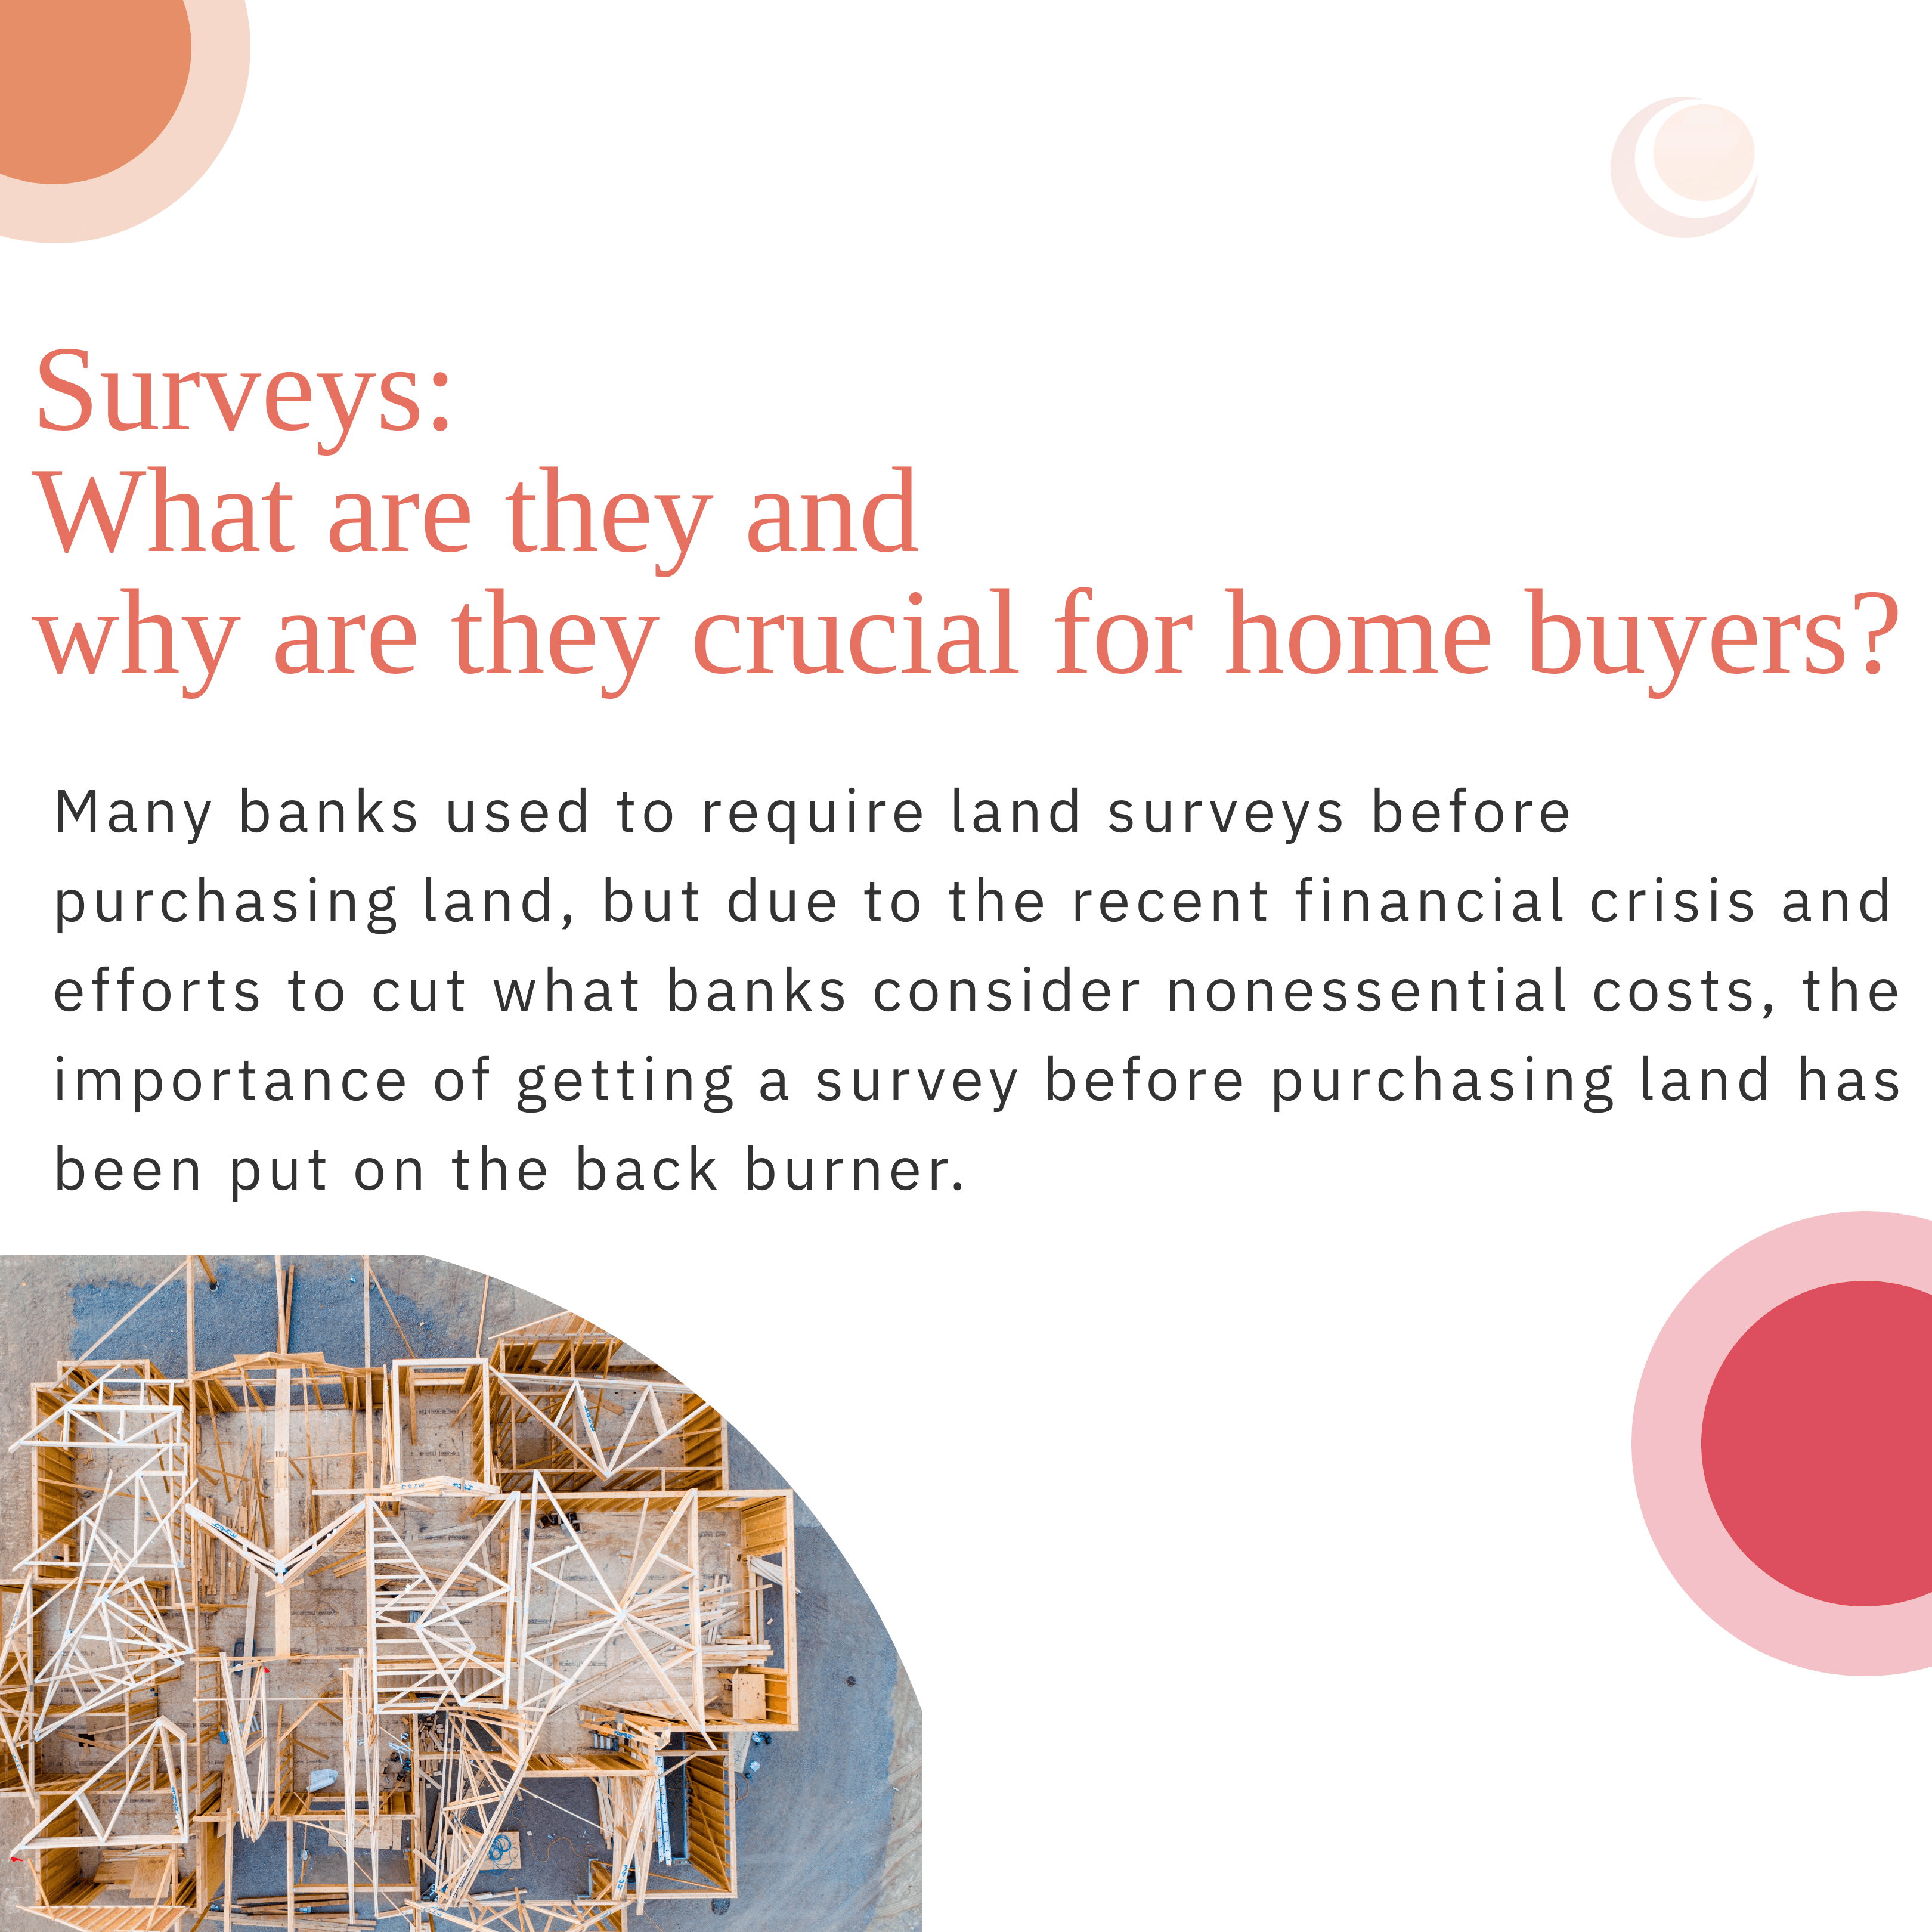 Are land surveys crucial for home buyers